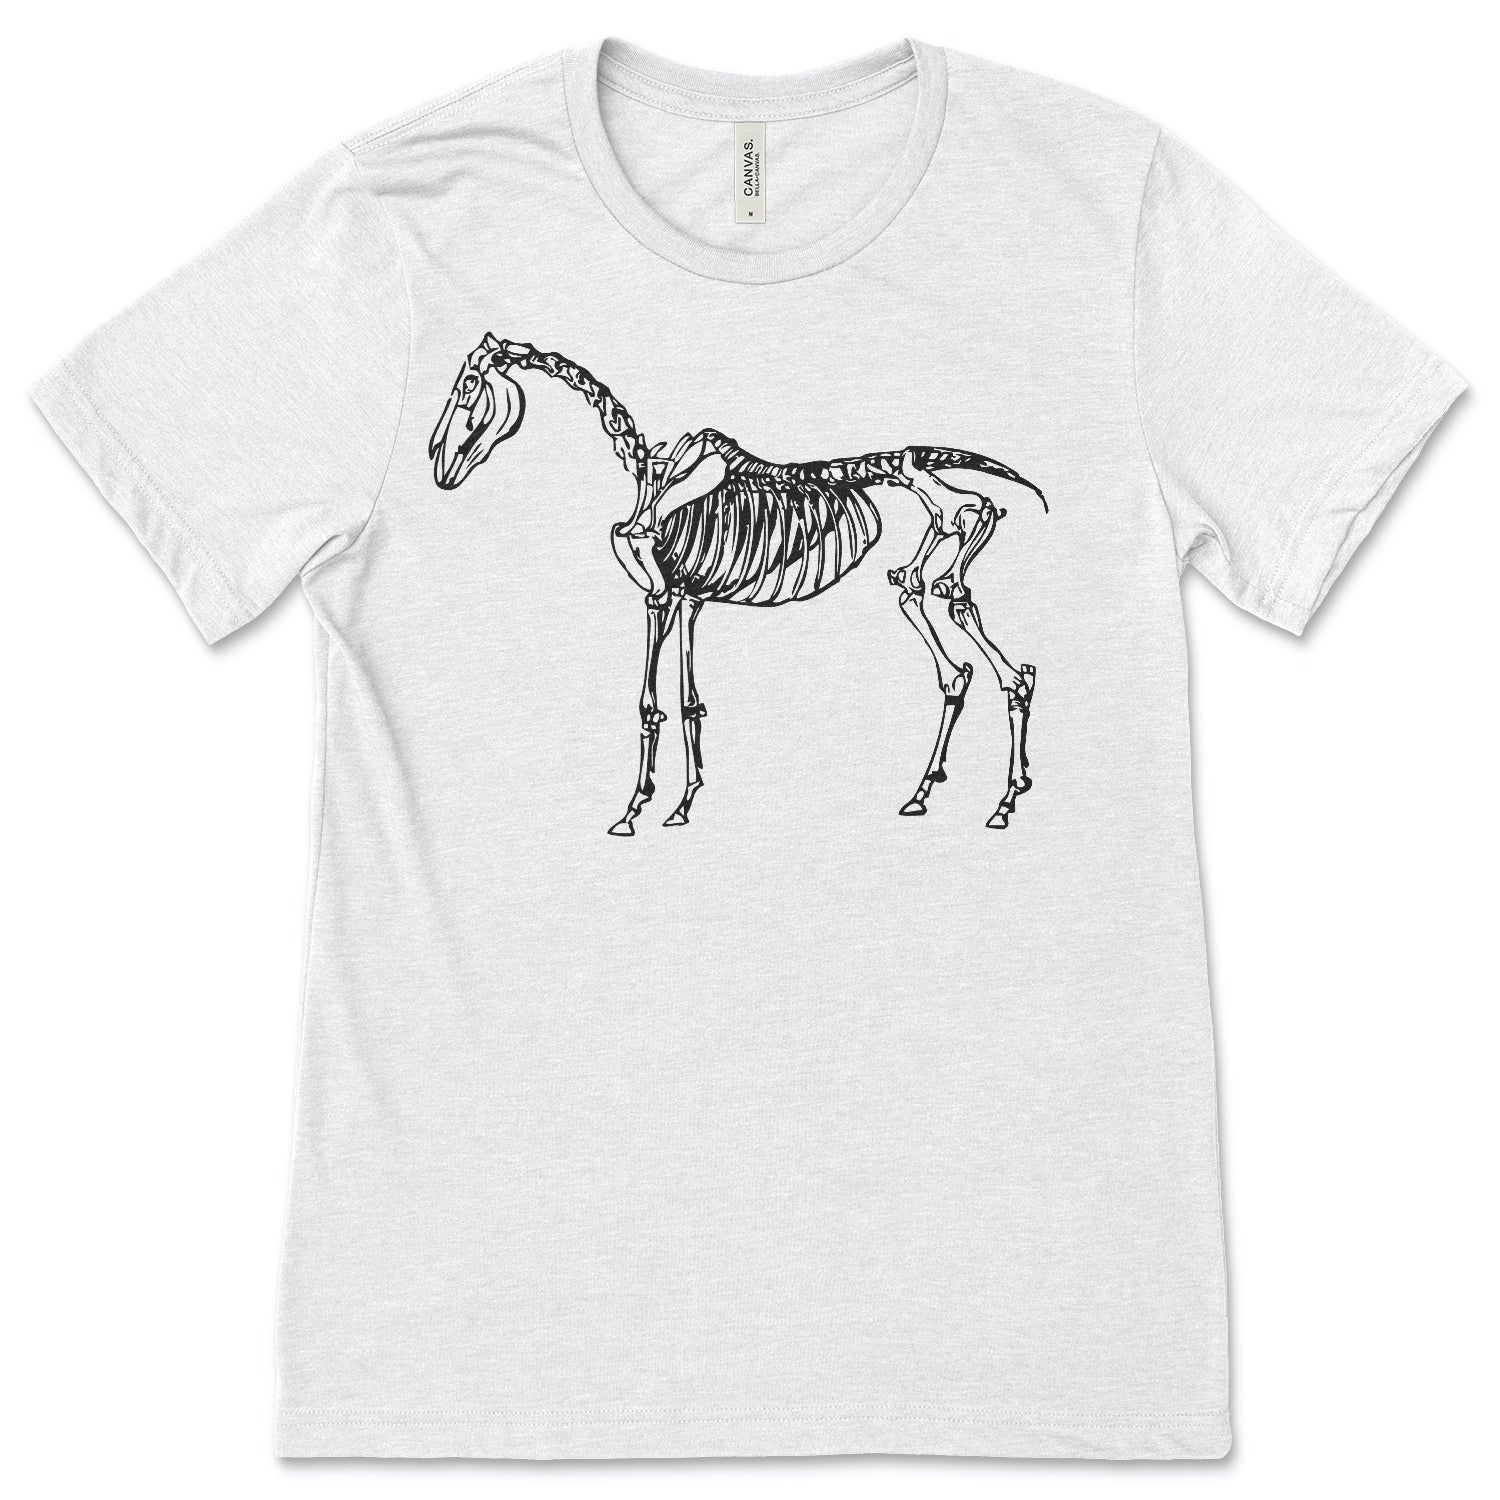 Horse Skeleton - ONE HORSE THREADS